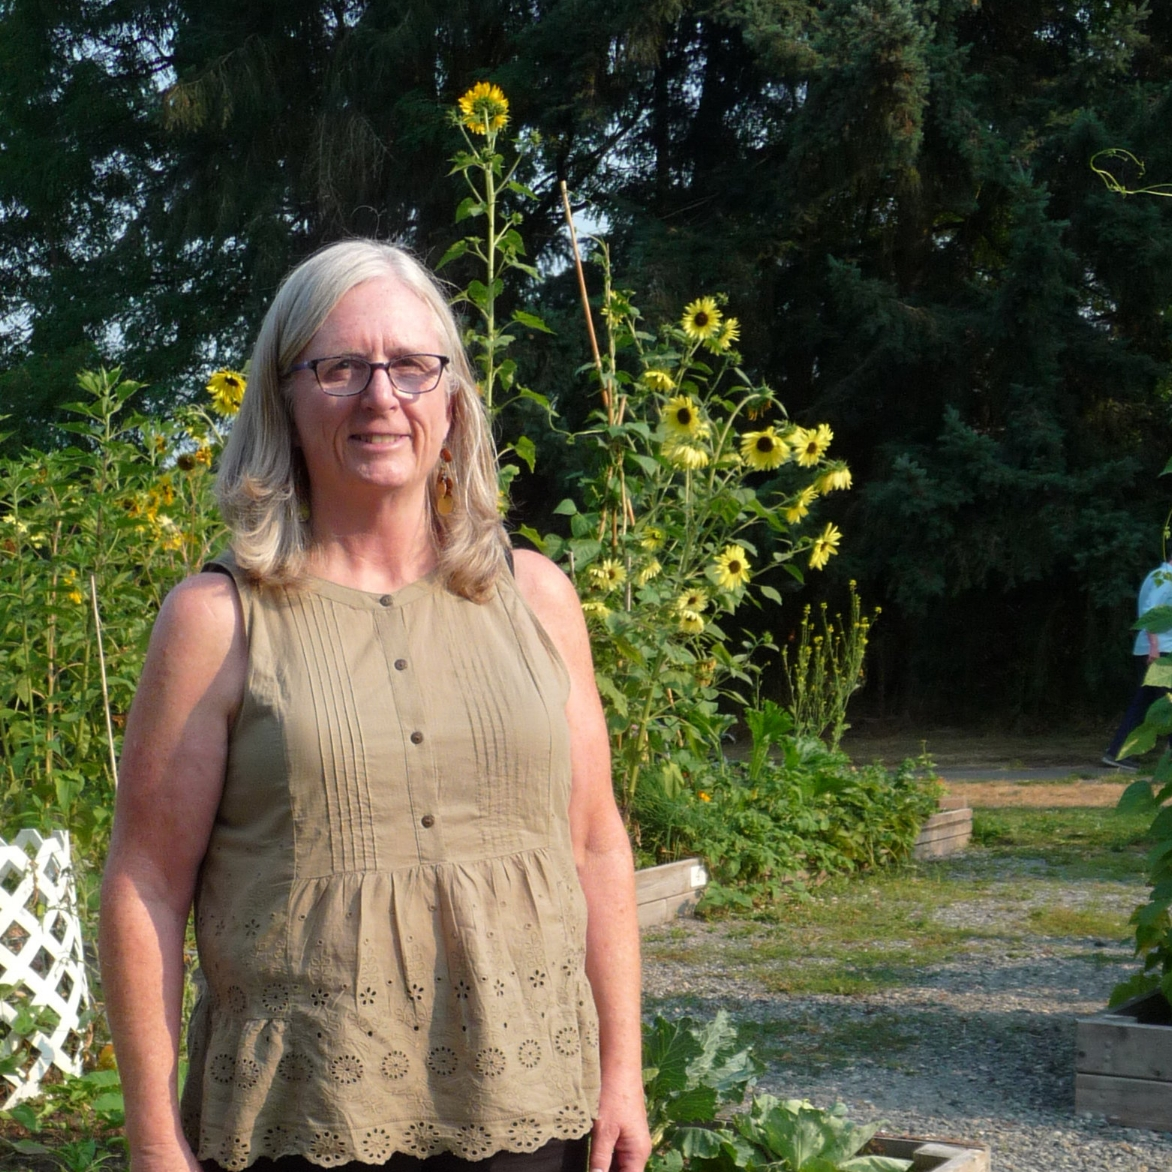 Nancy Short - Nancy Short has been instrumental in planting several churches in the Seattle area. She knows more about church planting than most pastors. Nancy is that key volunteer who will always show up and get things done. MORE